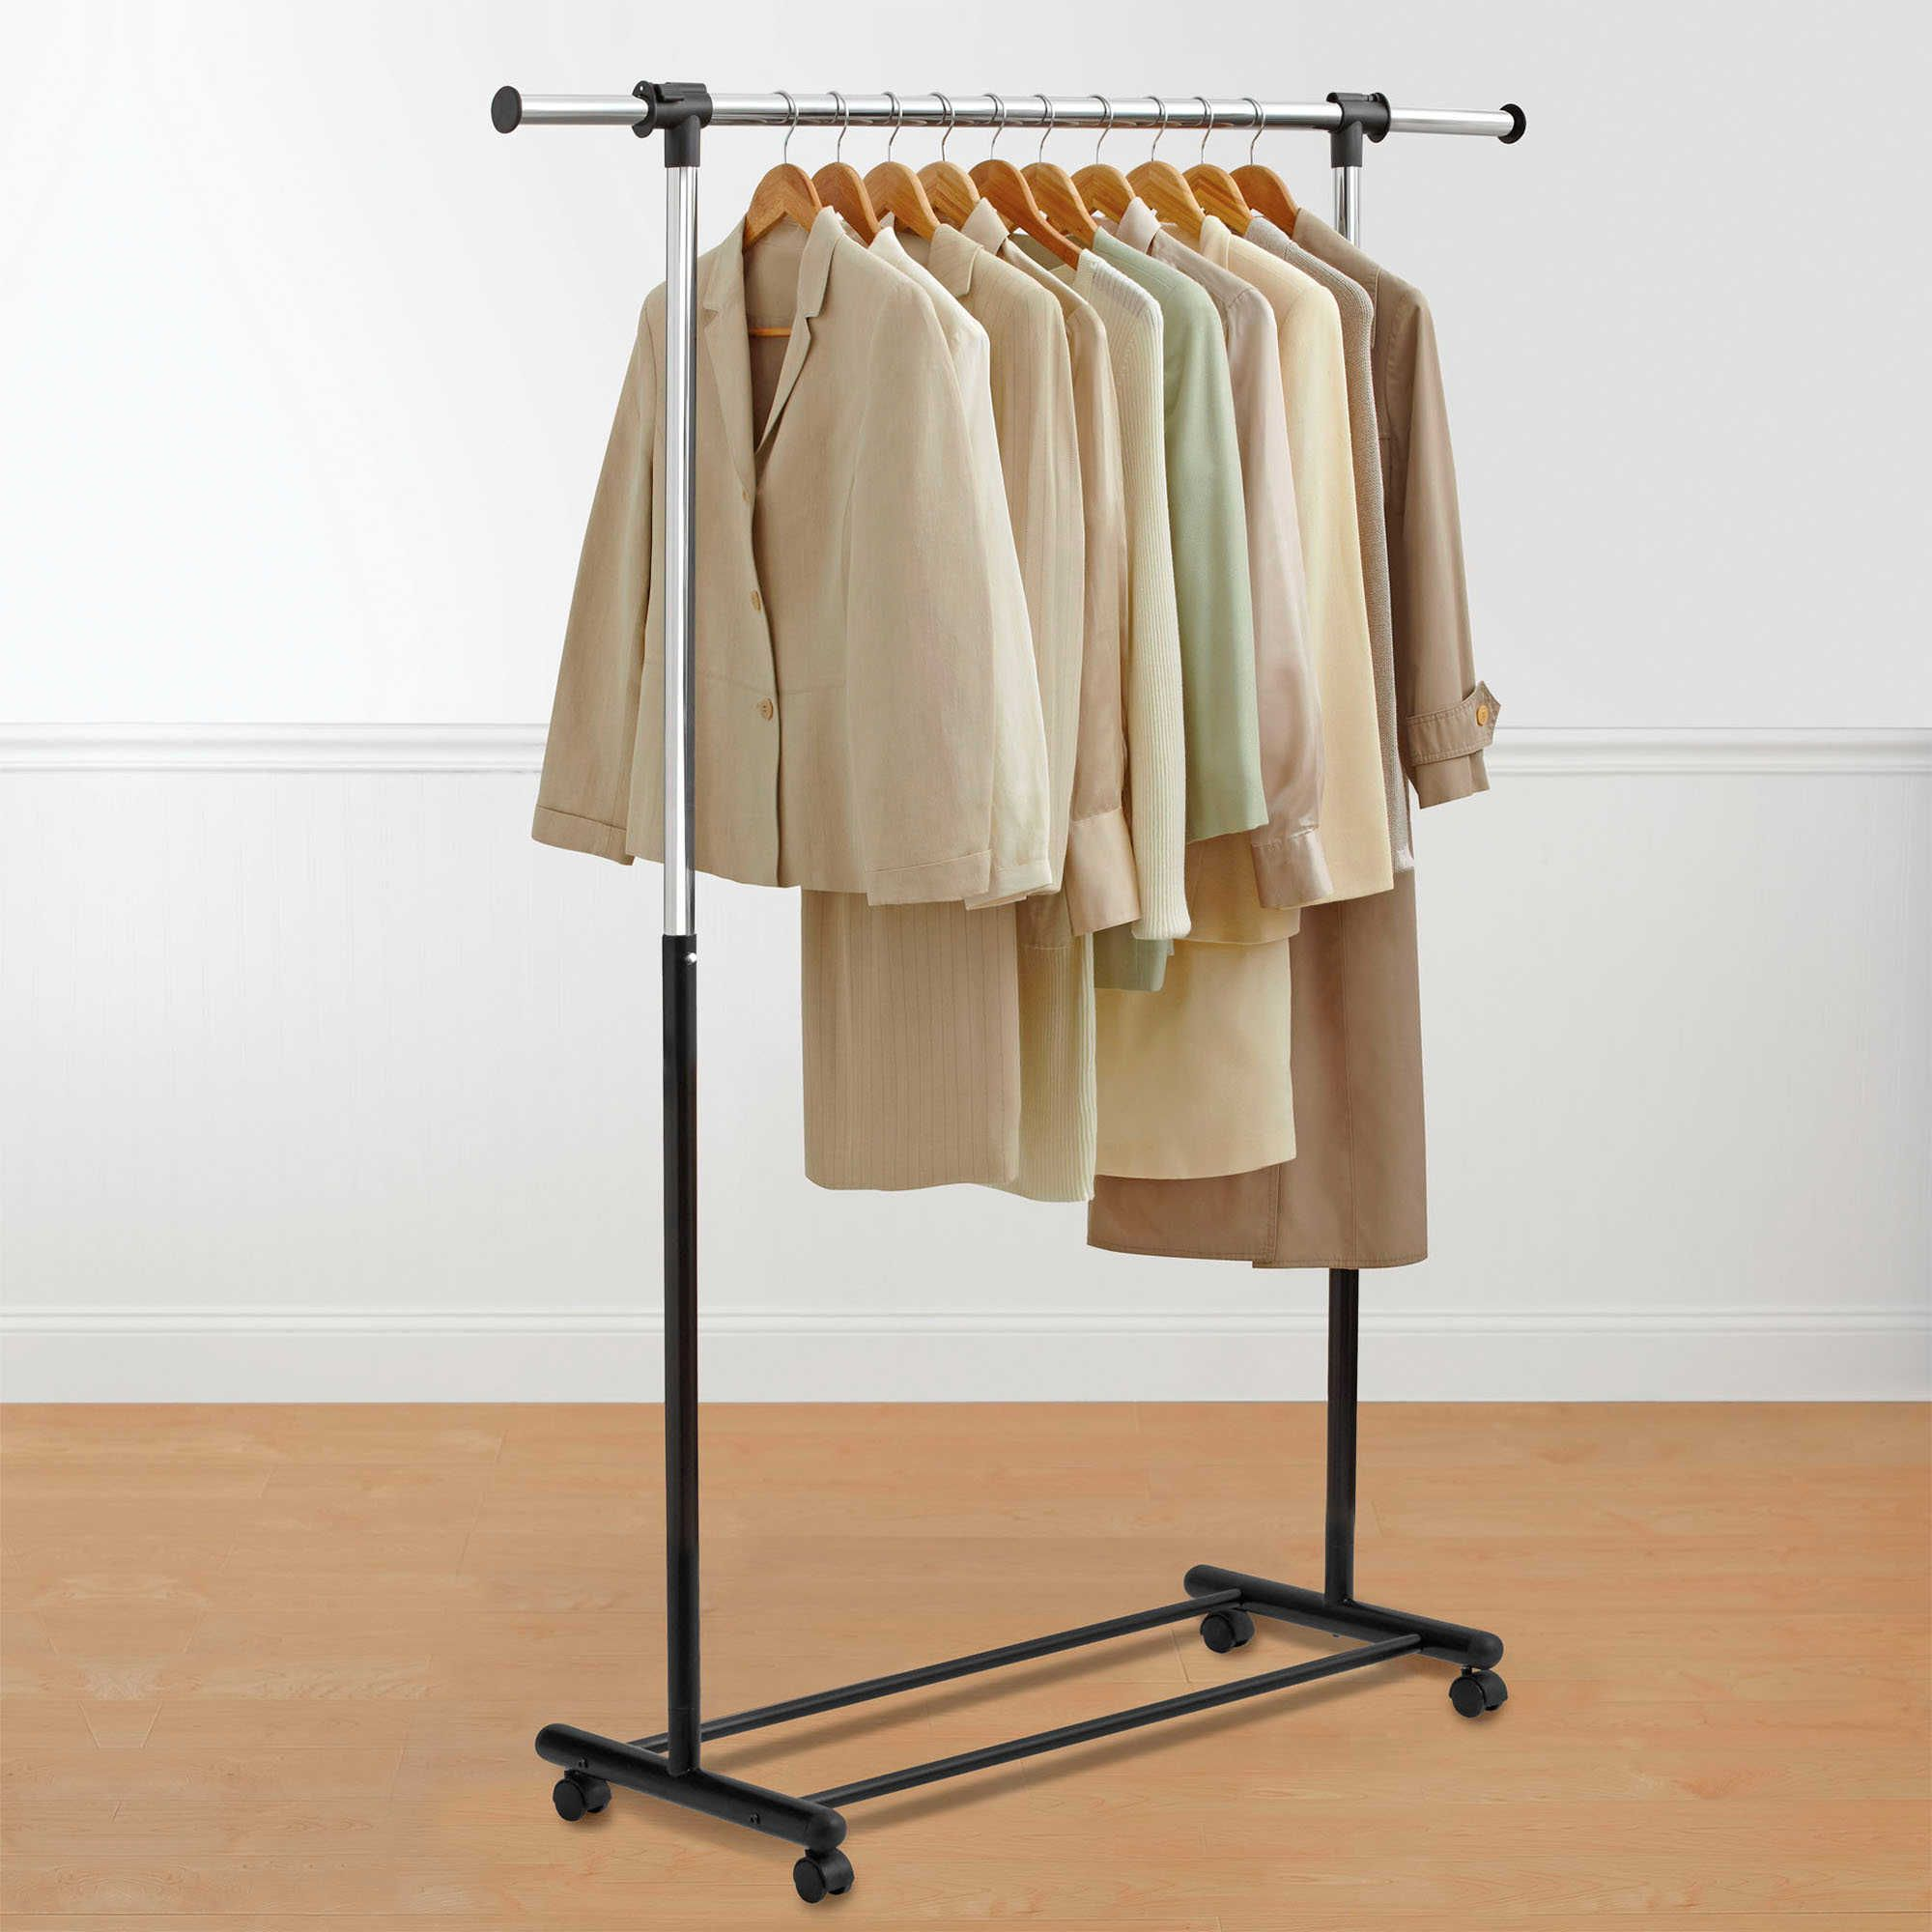 Bed Bath And Beyond Garment Rack Pleasing Portable And Expandable Garment Rack In Blackchrome  Garment Racks Review